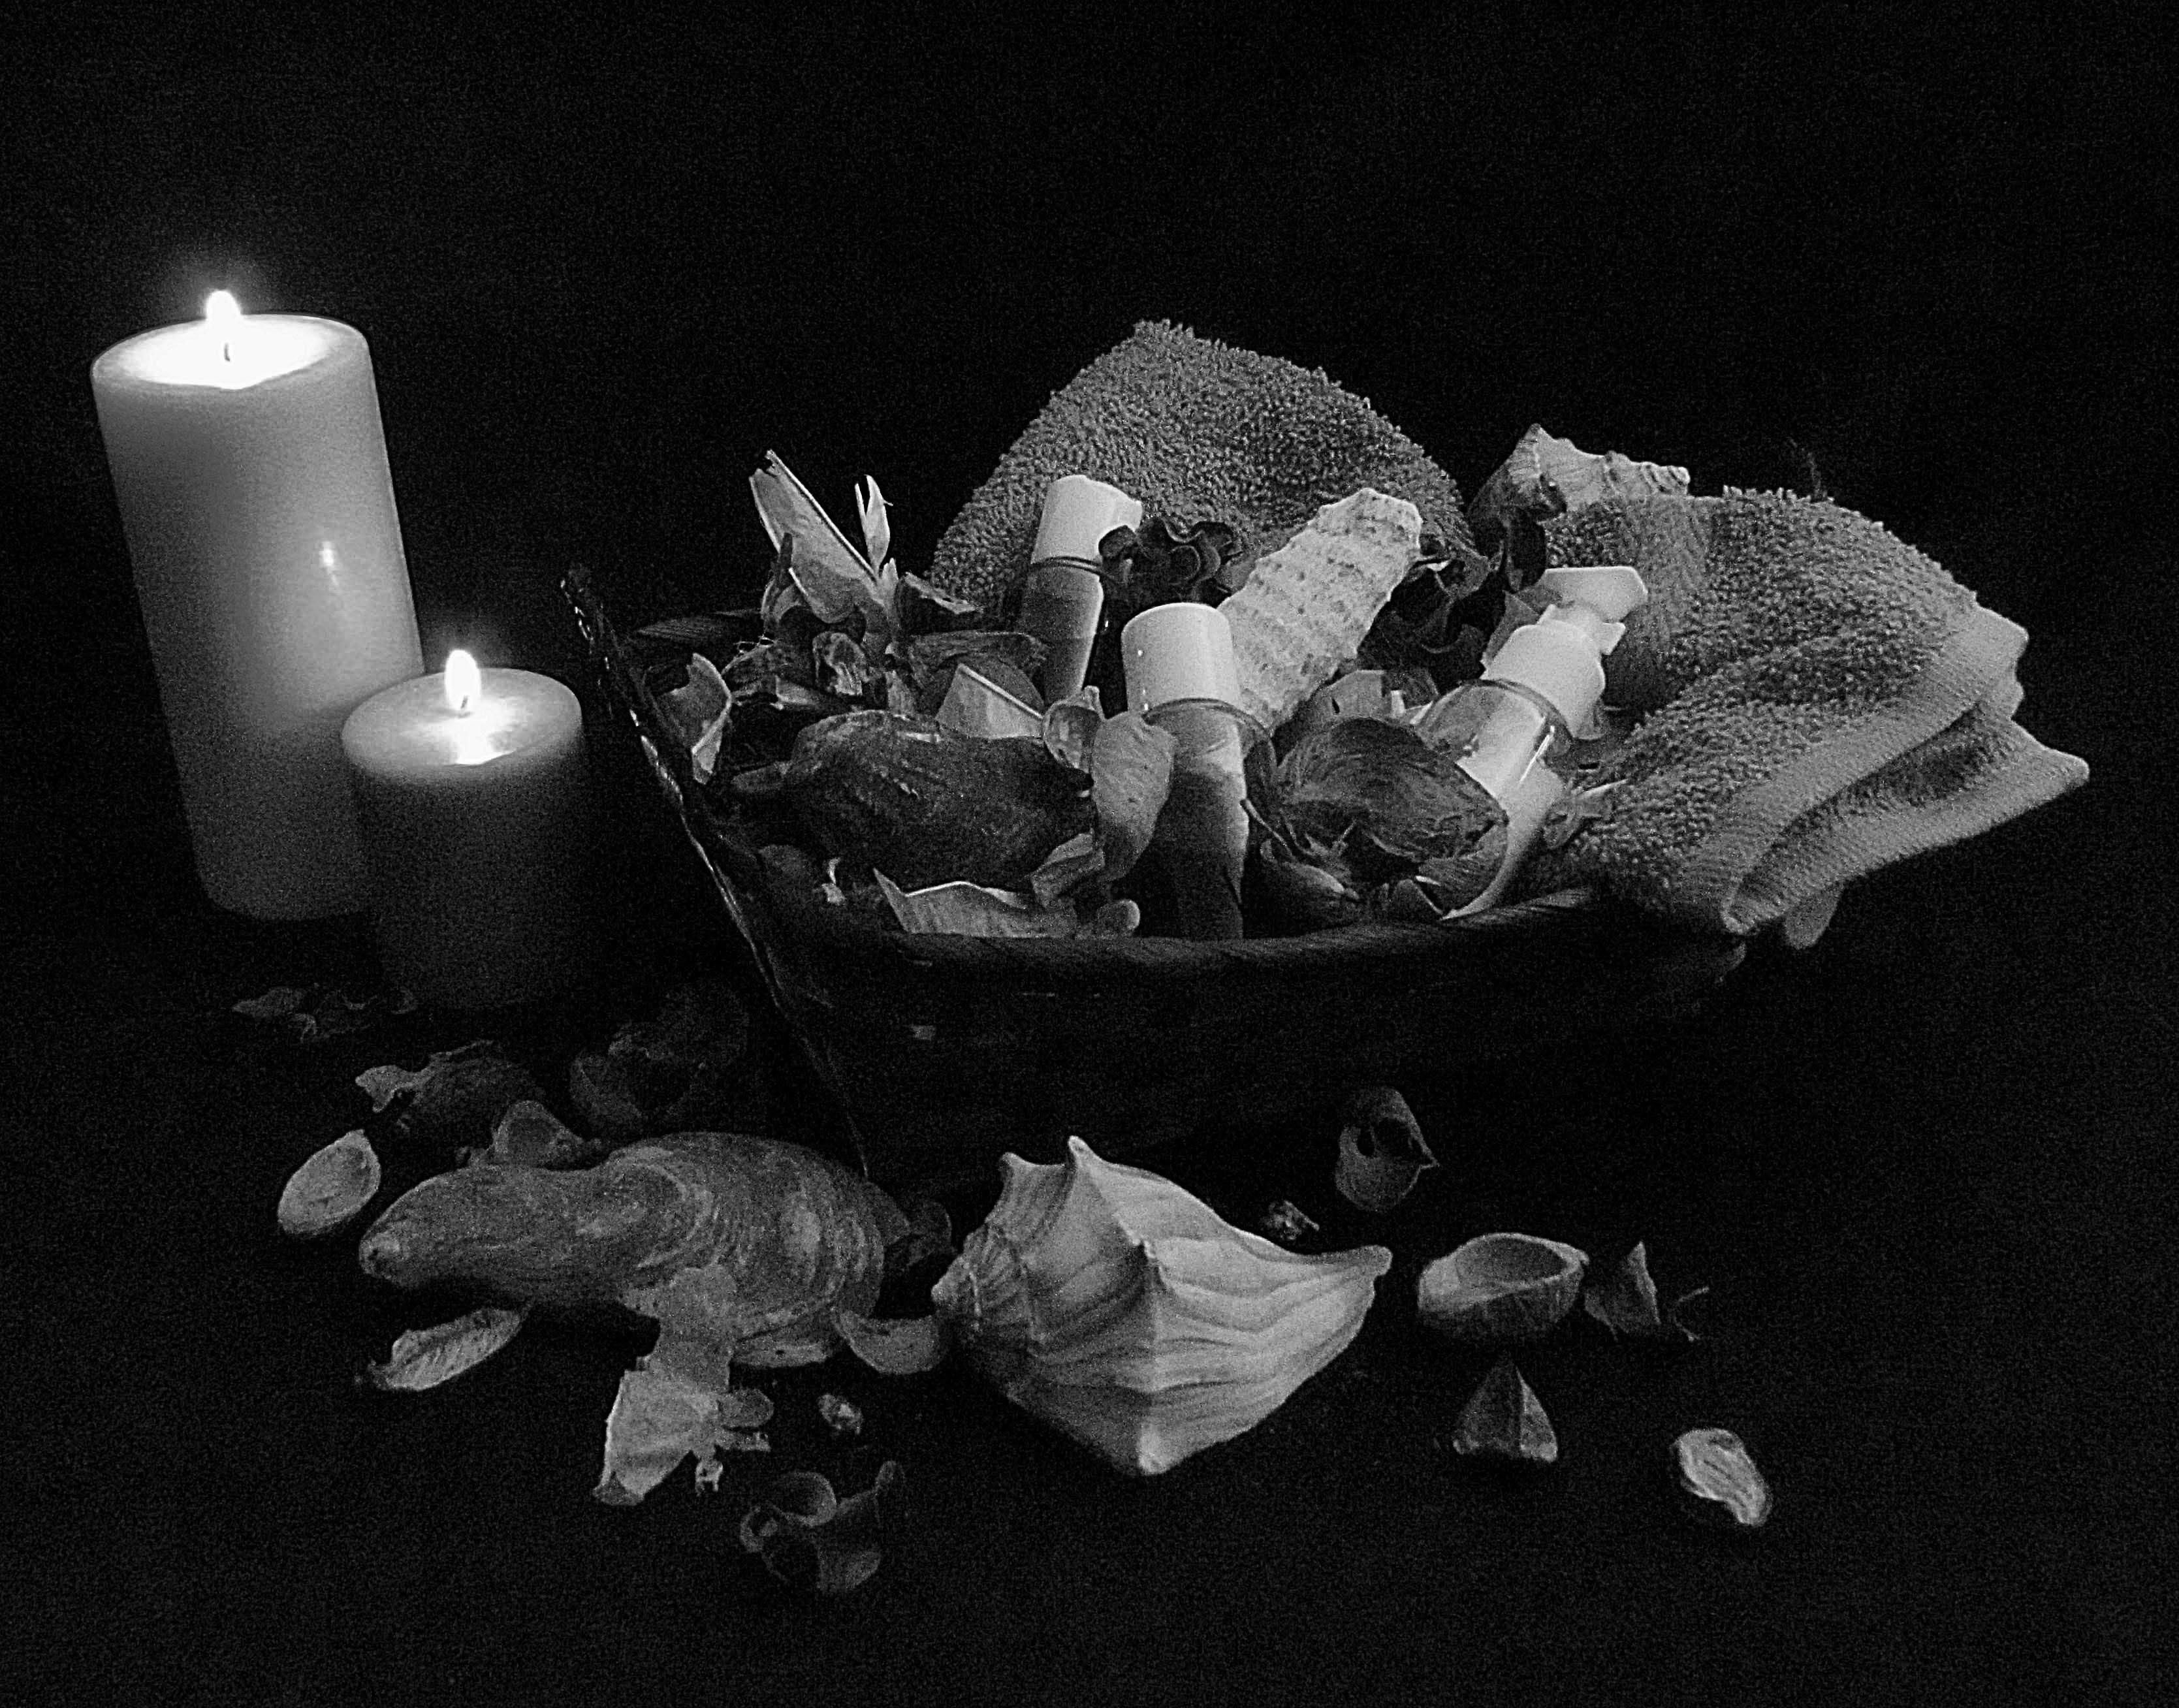 Black White Of Mage Oil Display With Candles